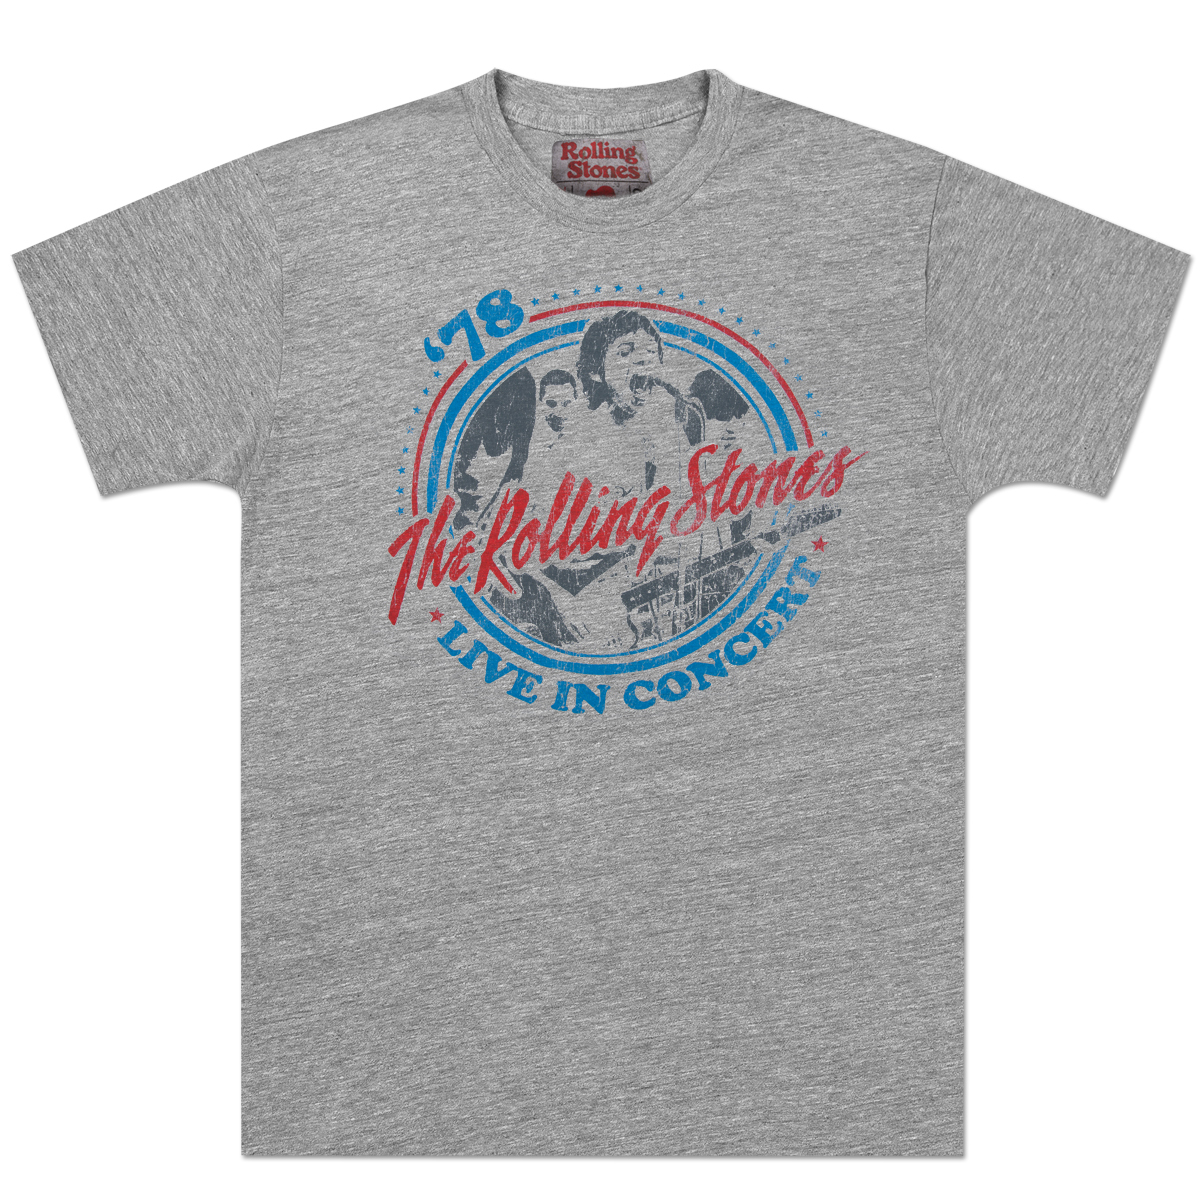 Rolling Stones '78 Live In Concert T-Shirt